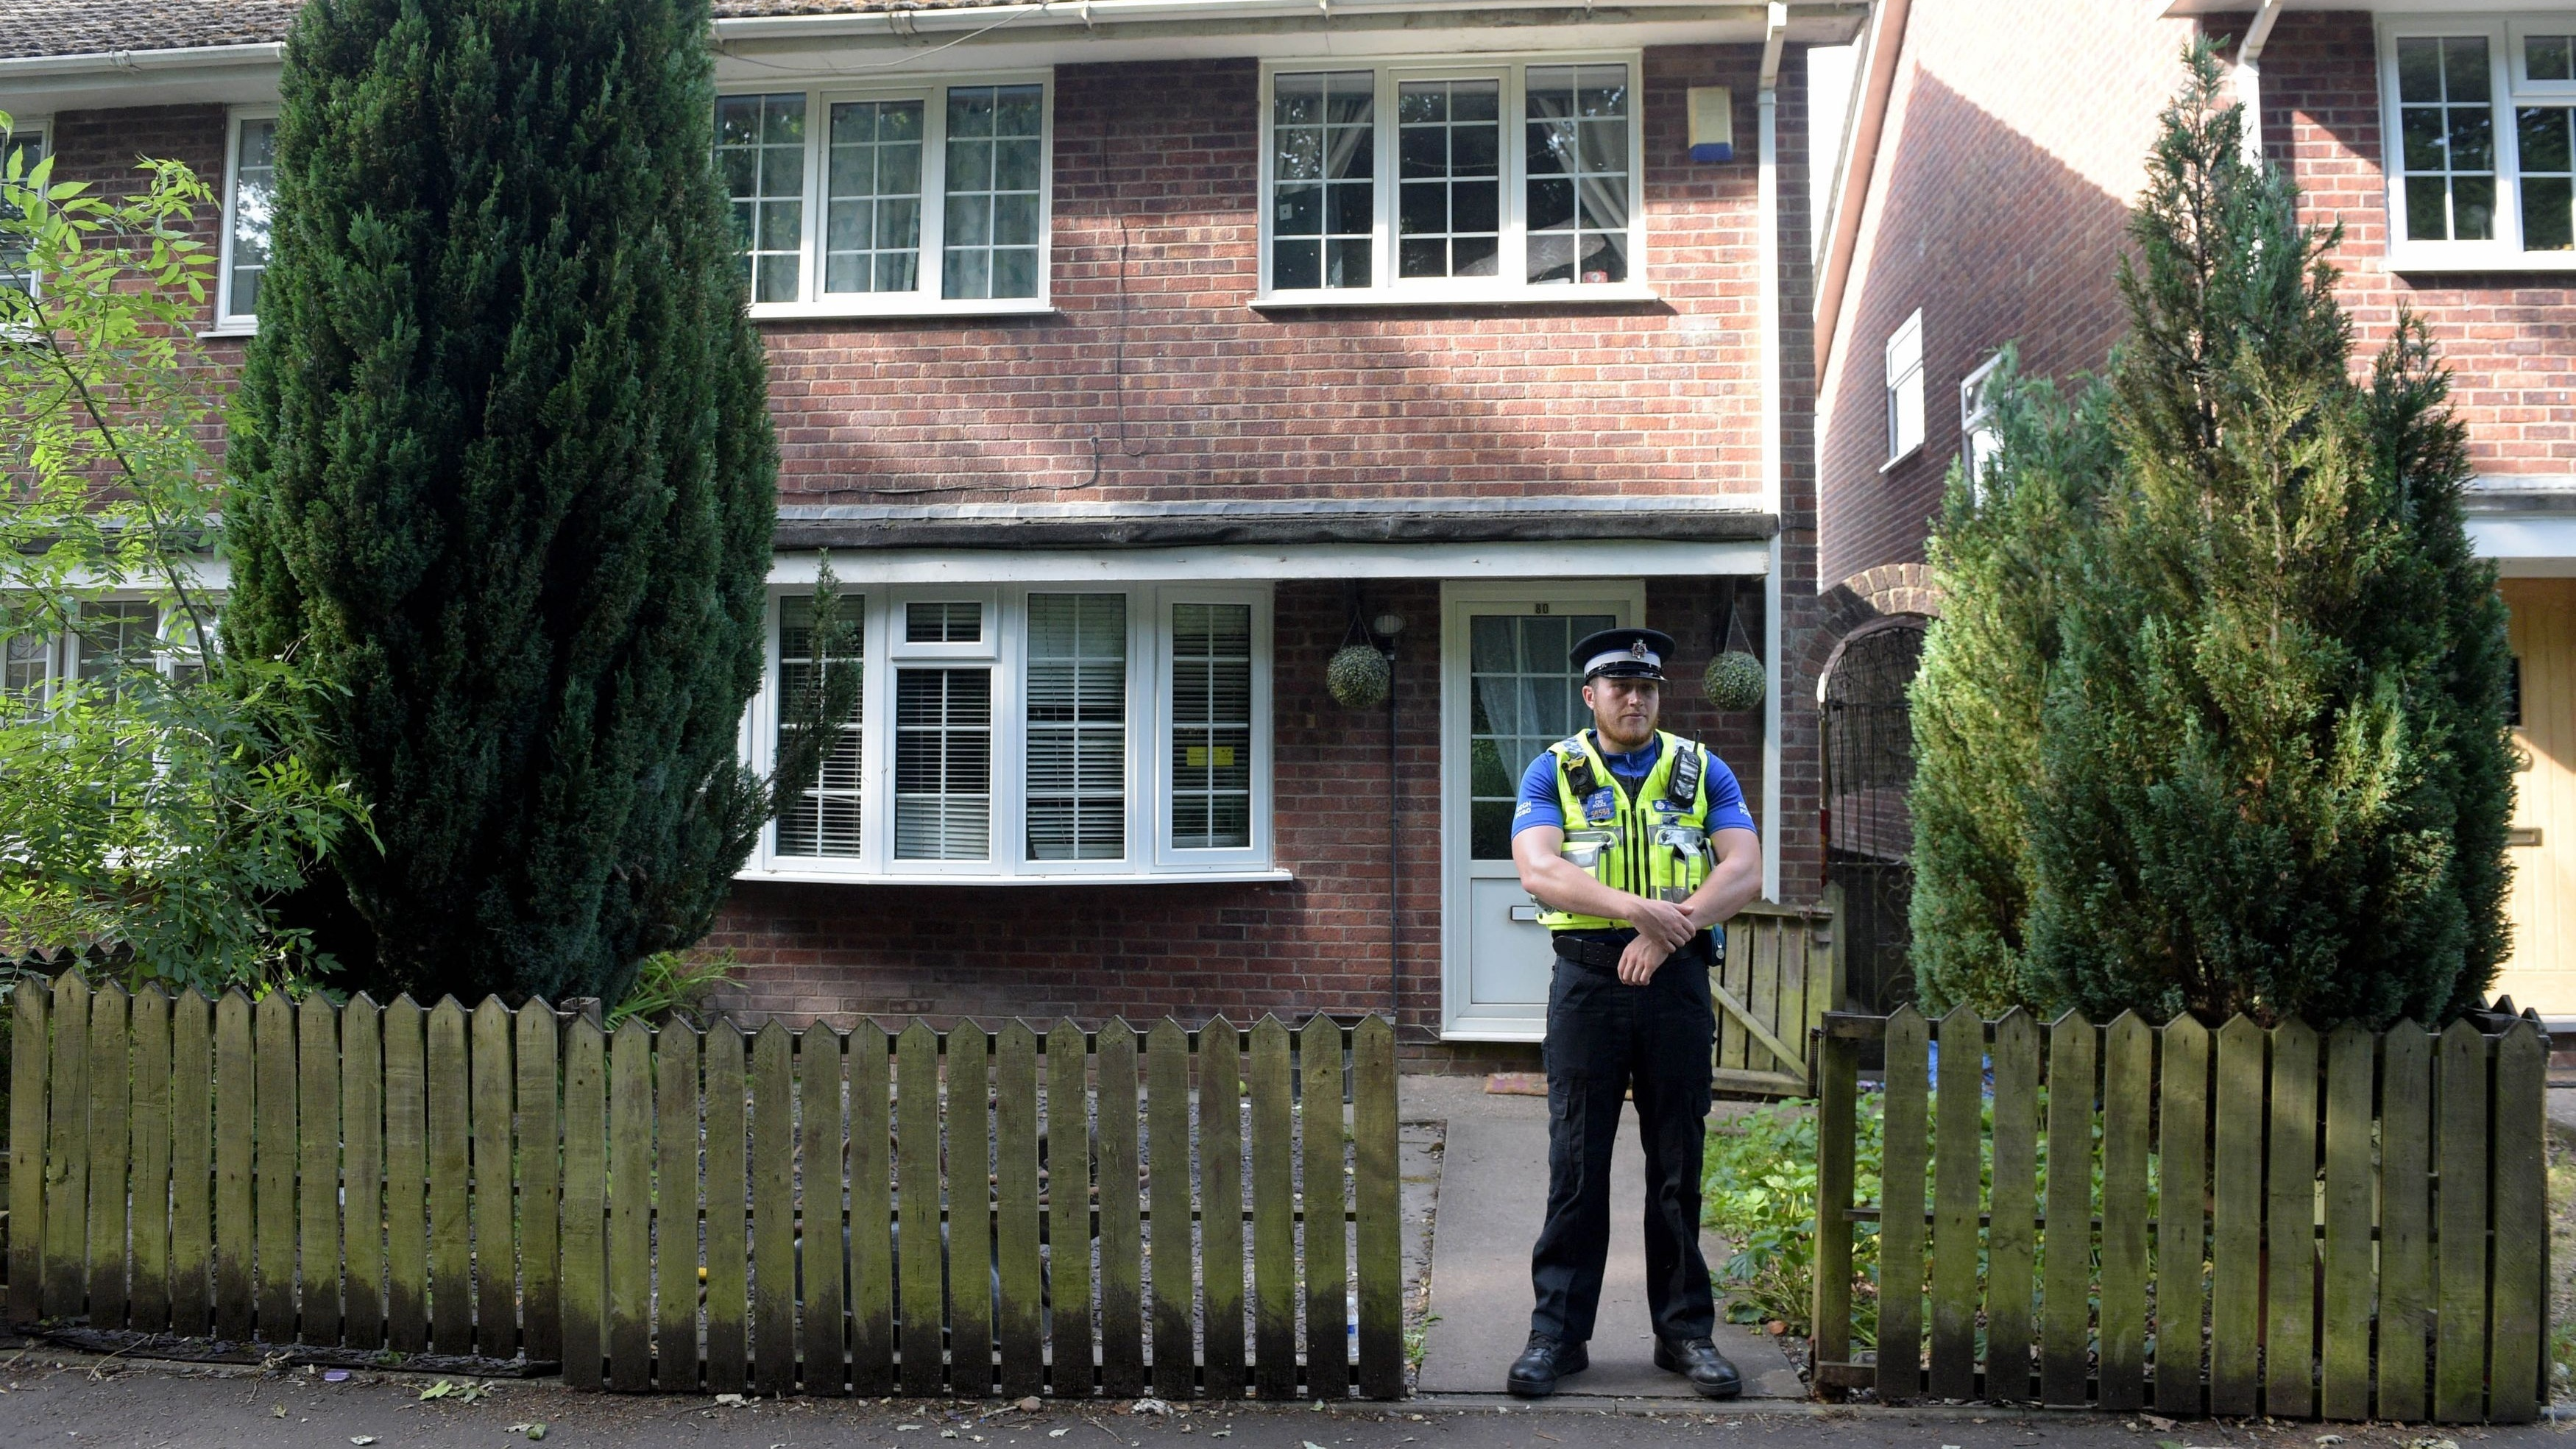 Darren Osborne, a 47-year-old who is believed to be a father-of-four from Cardiff, was arrested at the scene.